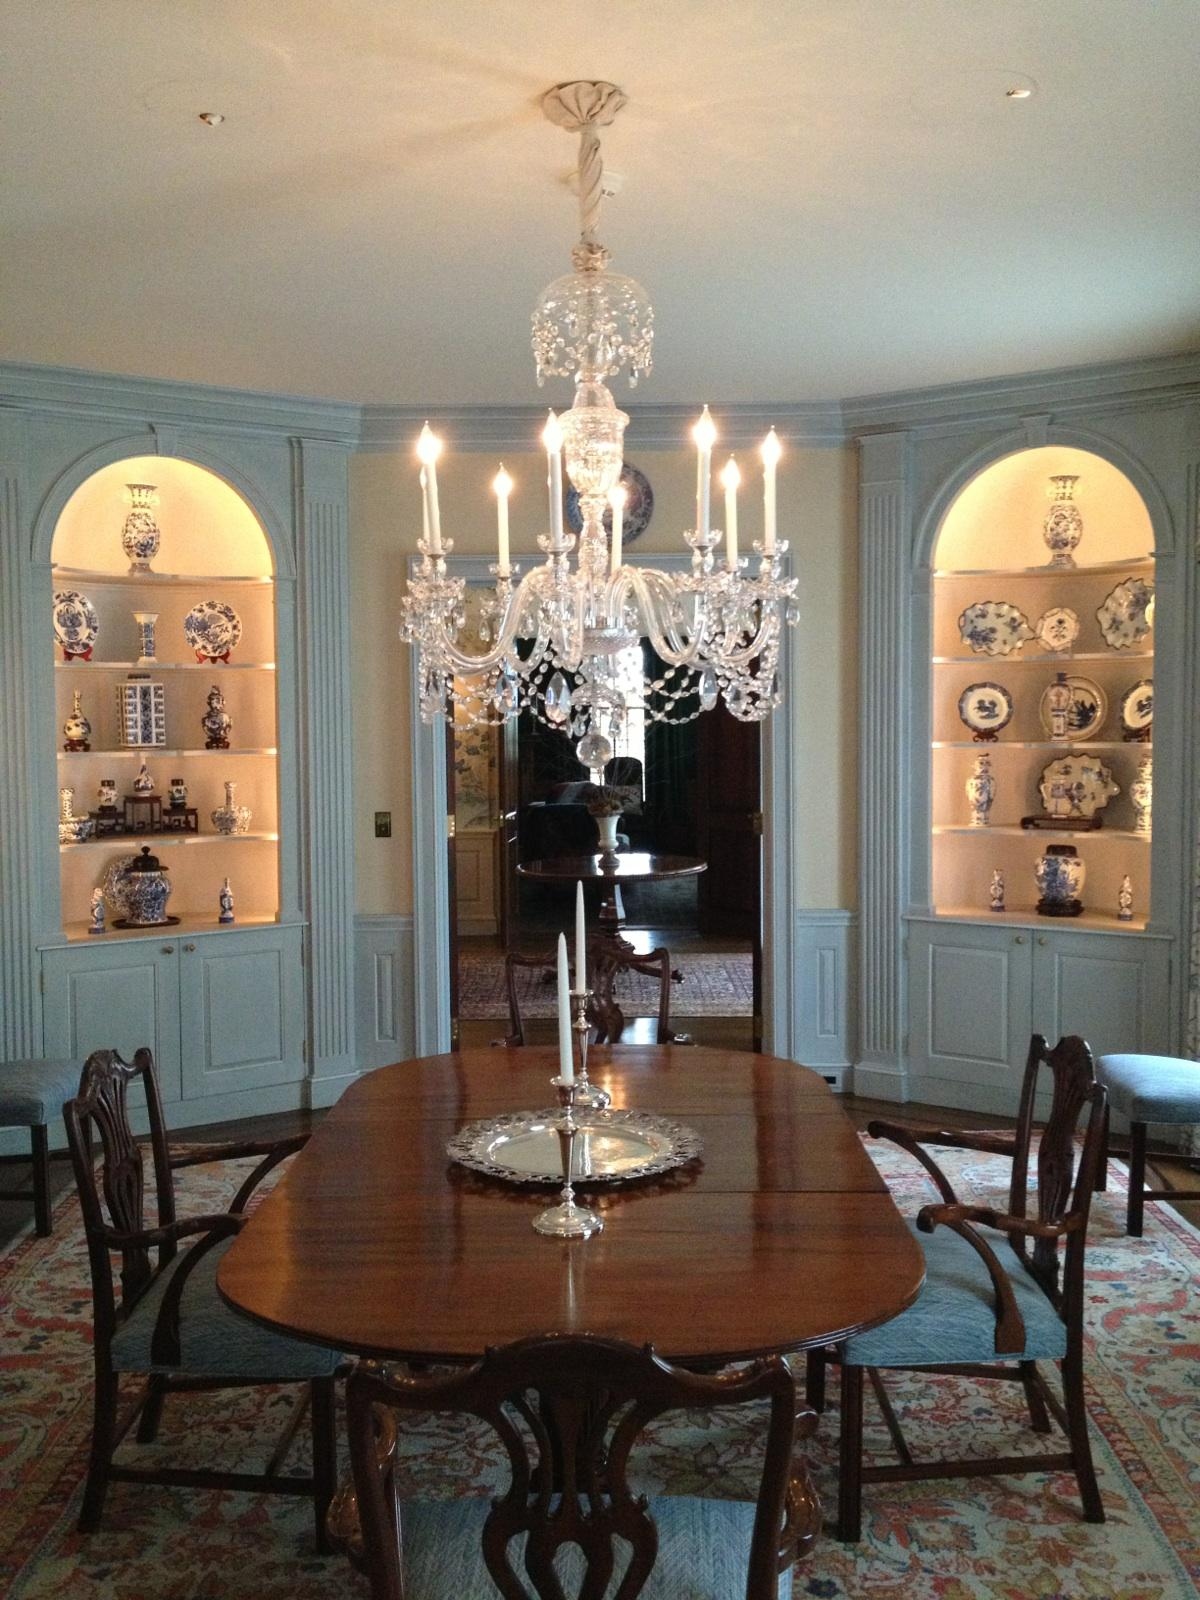 Chandelier Restoration Manhattan Ny Expert Lighting Inc Cleaning And Rewiring Chandeliers Services Company Nj Pa